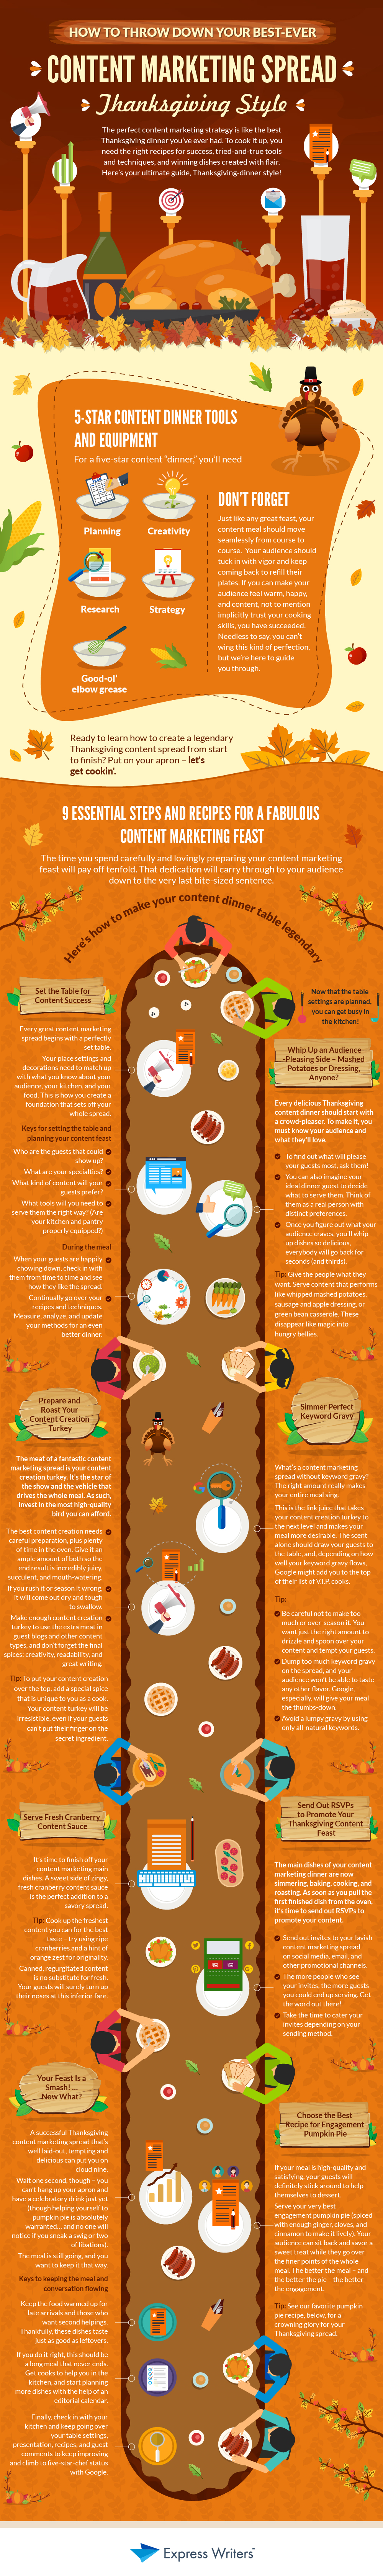 How to Throw Down Your Best-Ever Content Marketing Spread- Thanksgiving Style